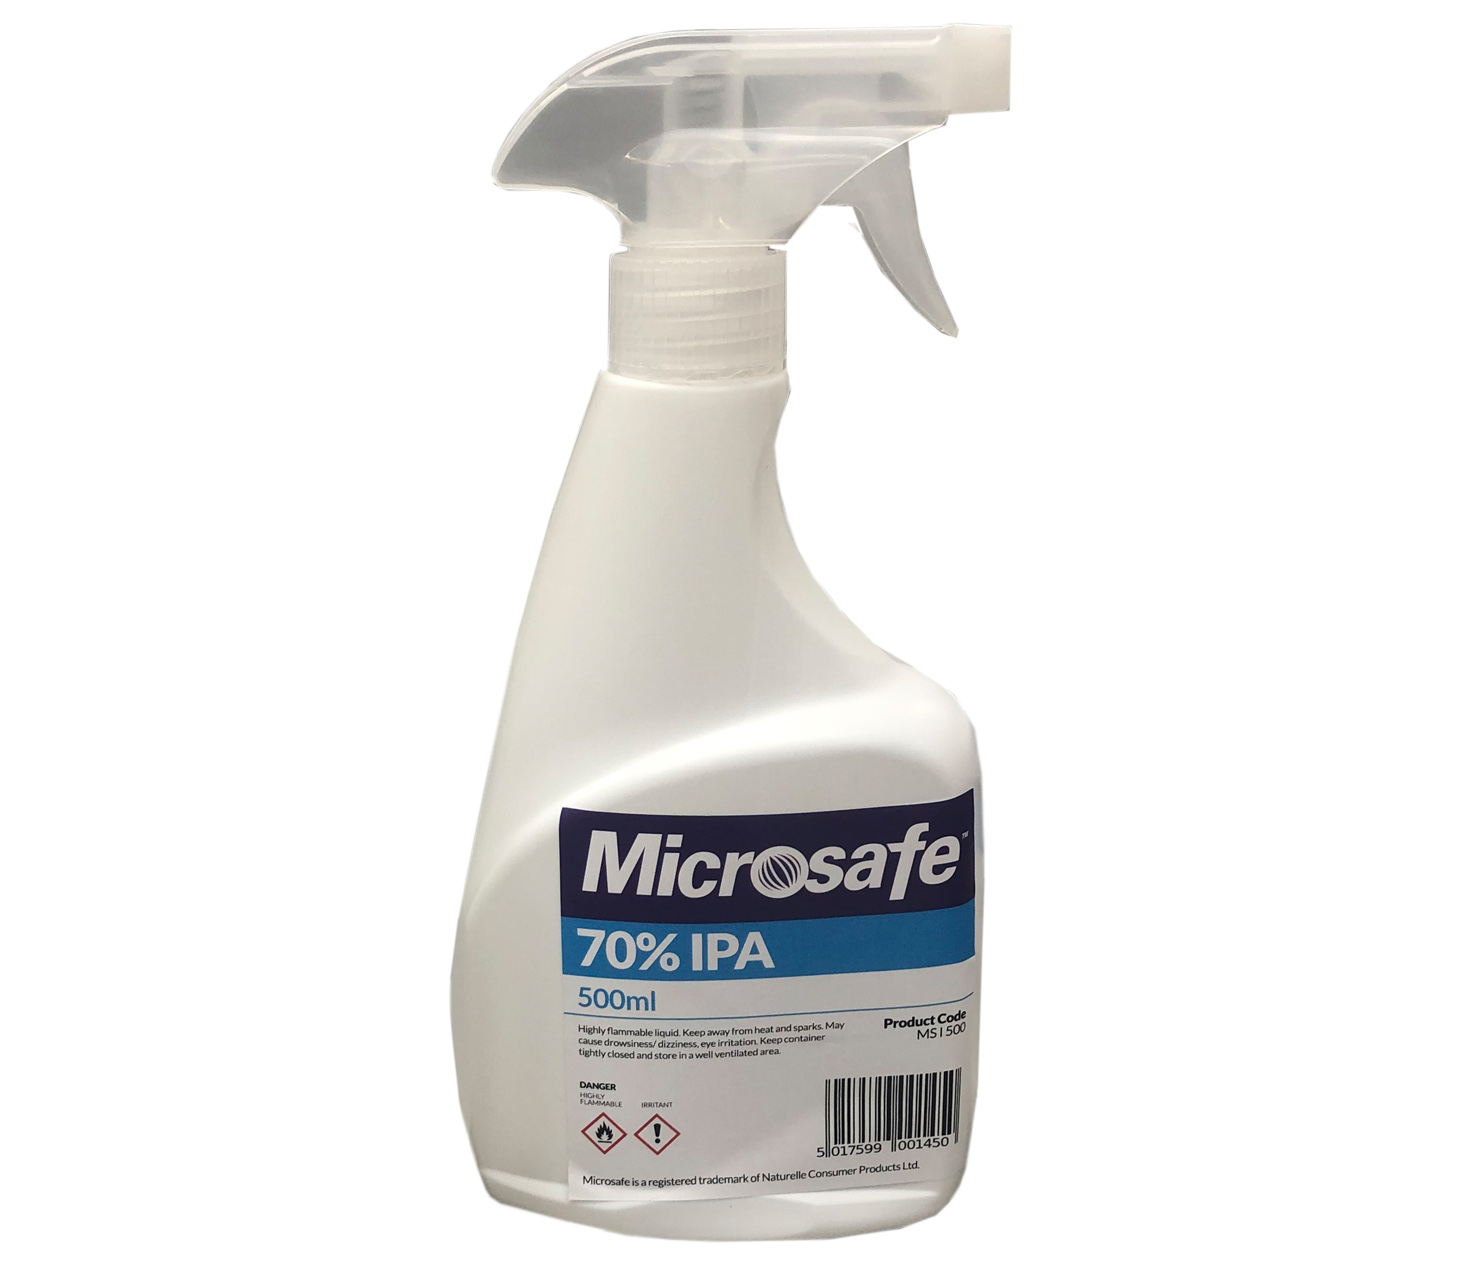 637218718675914103_microsafe_spray_500ml.jpg